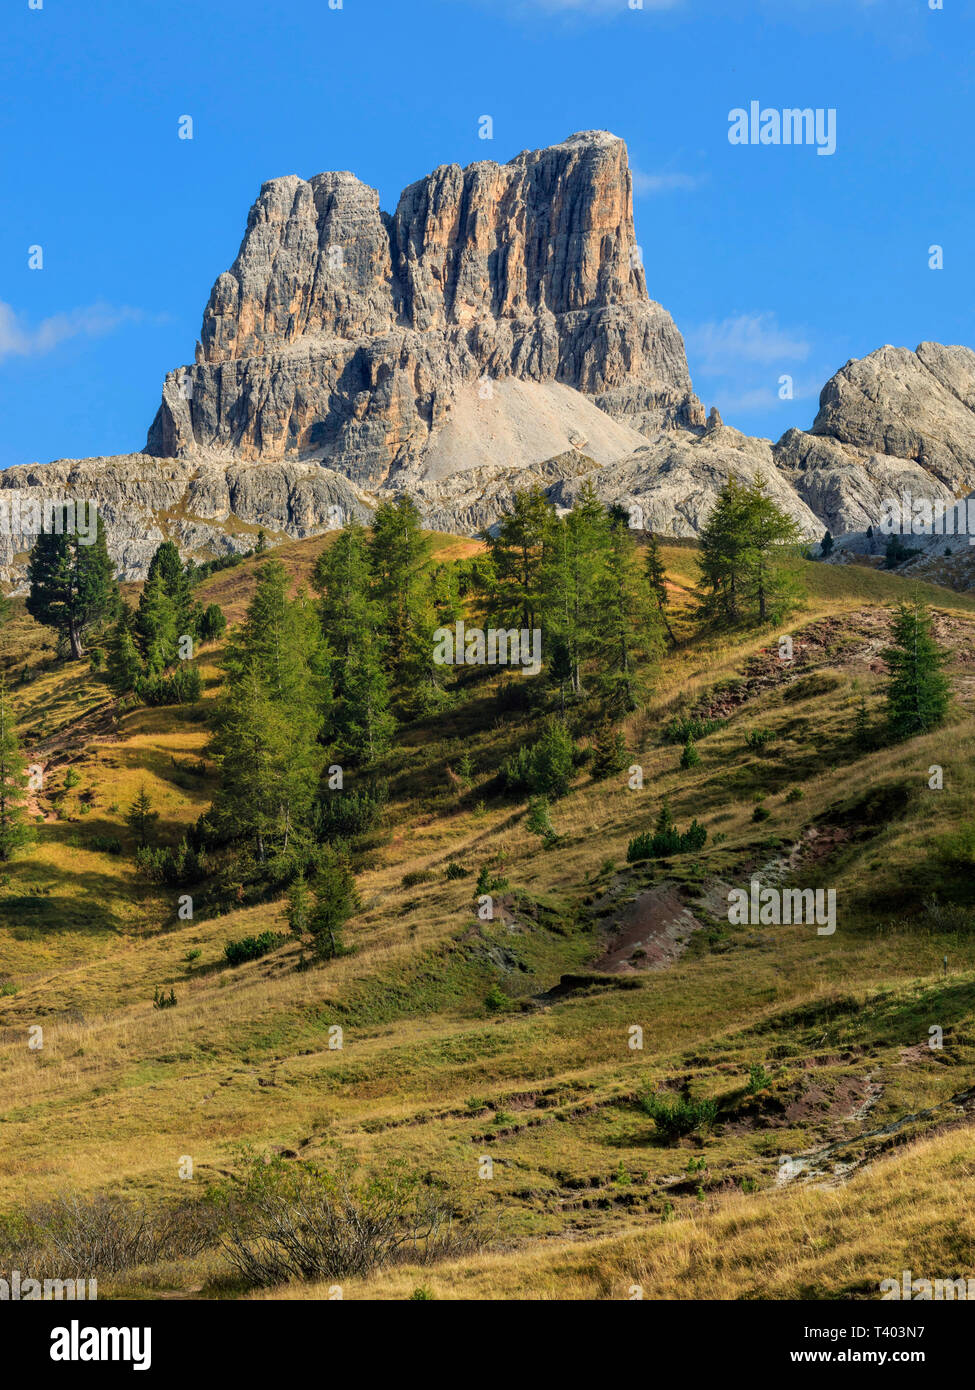 A view of Mount Averau, a peak in the Dolomiti d'Ampezzo mountain range. Taken from the prairies of Falzarego Pass, a high altitude road pass linking  - Stock Image